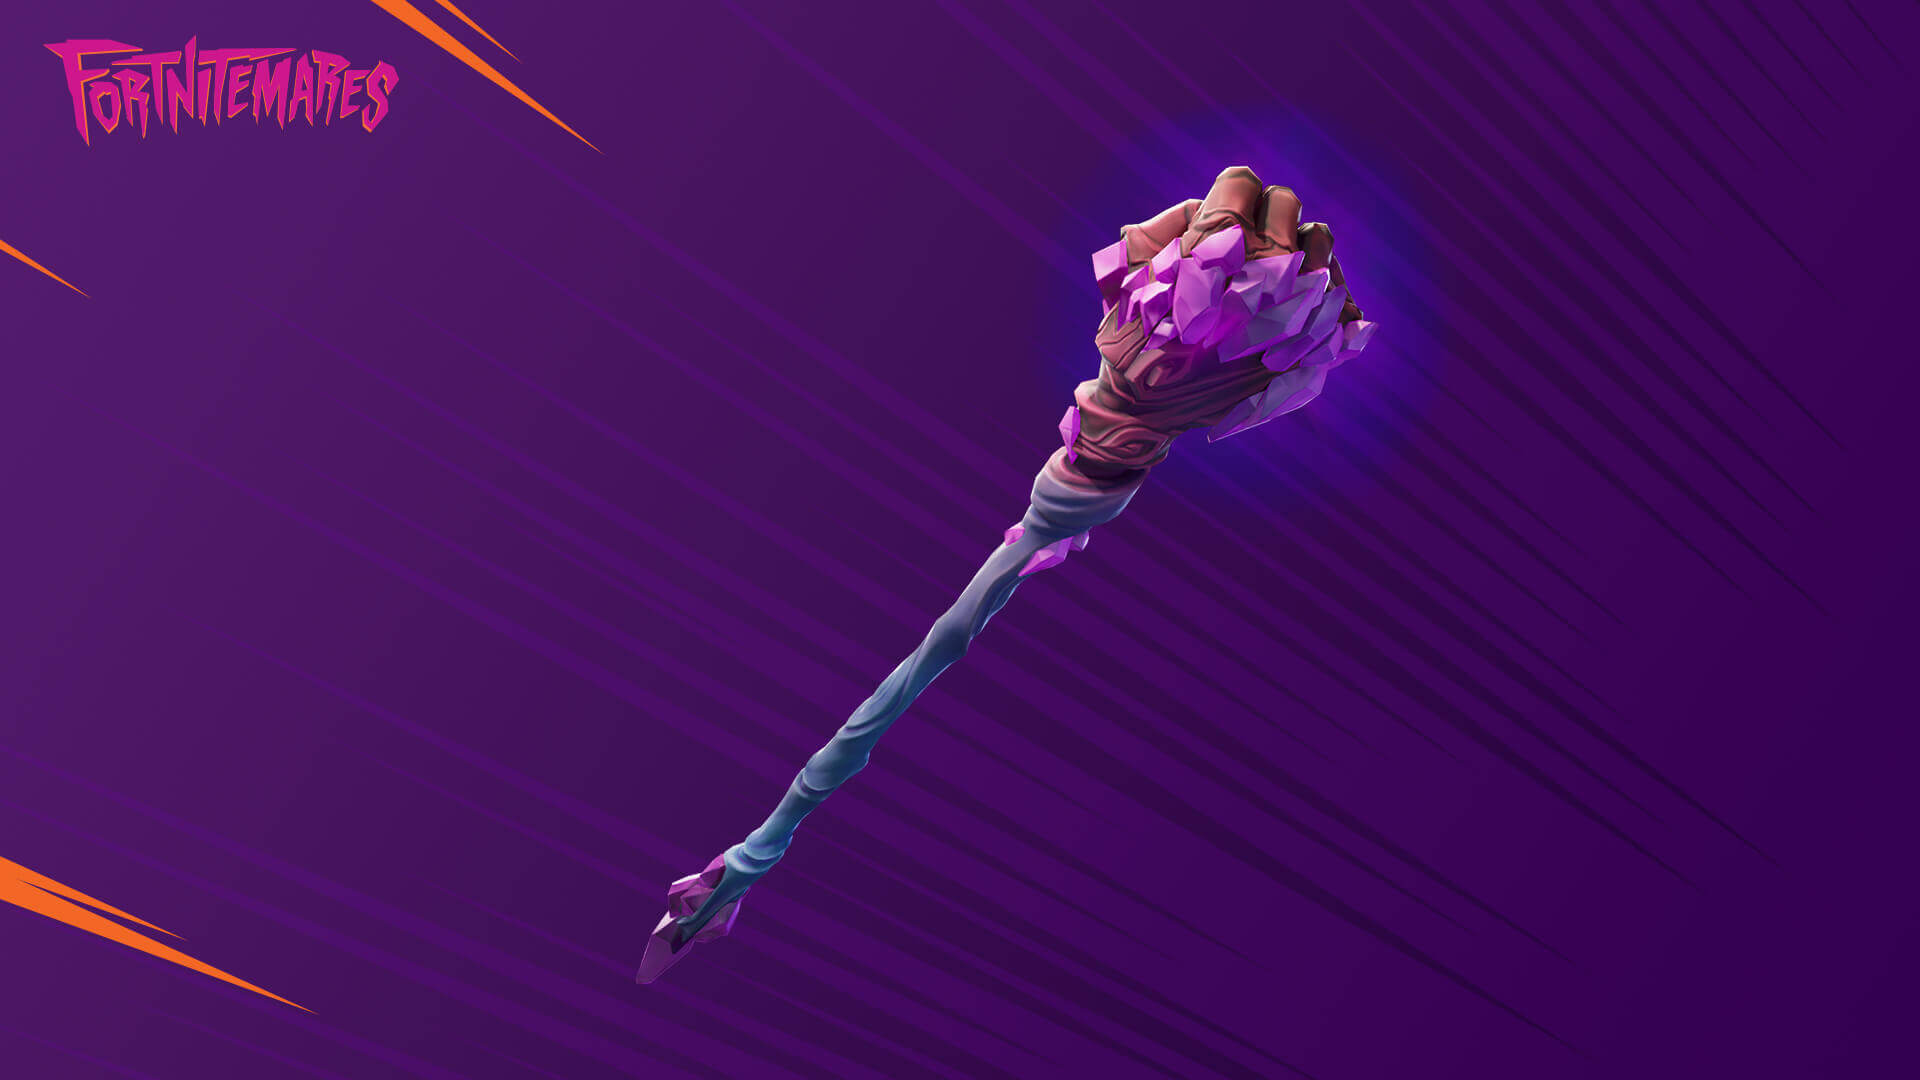 Fortnitemares New Skin Bundles Zombies And Gamemodes